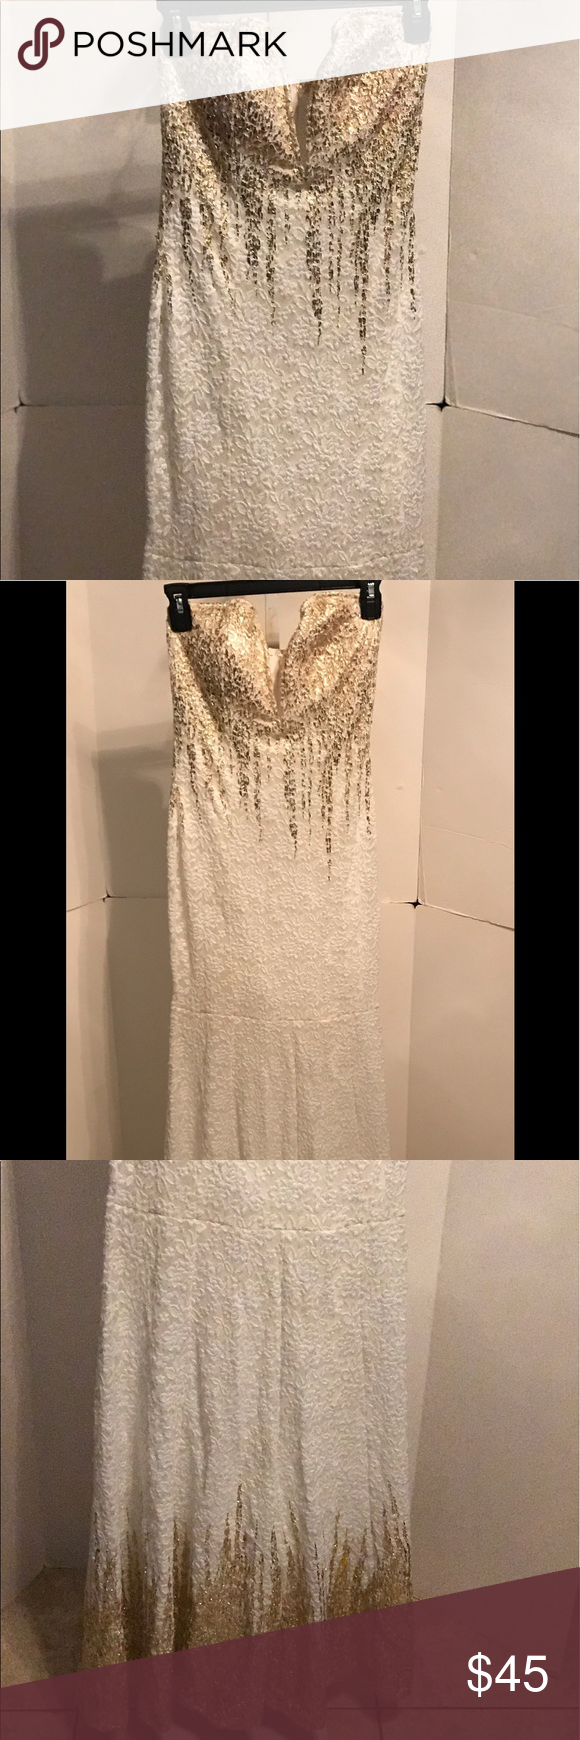 Strapless white and gold prom dressgown